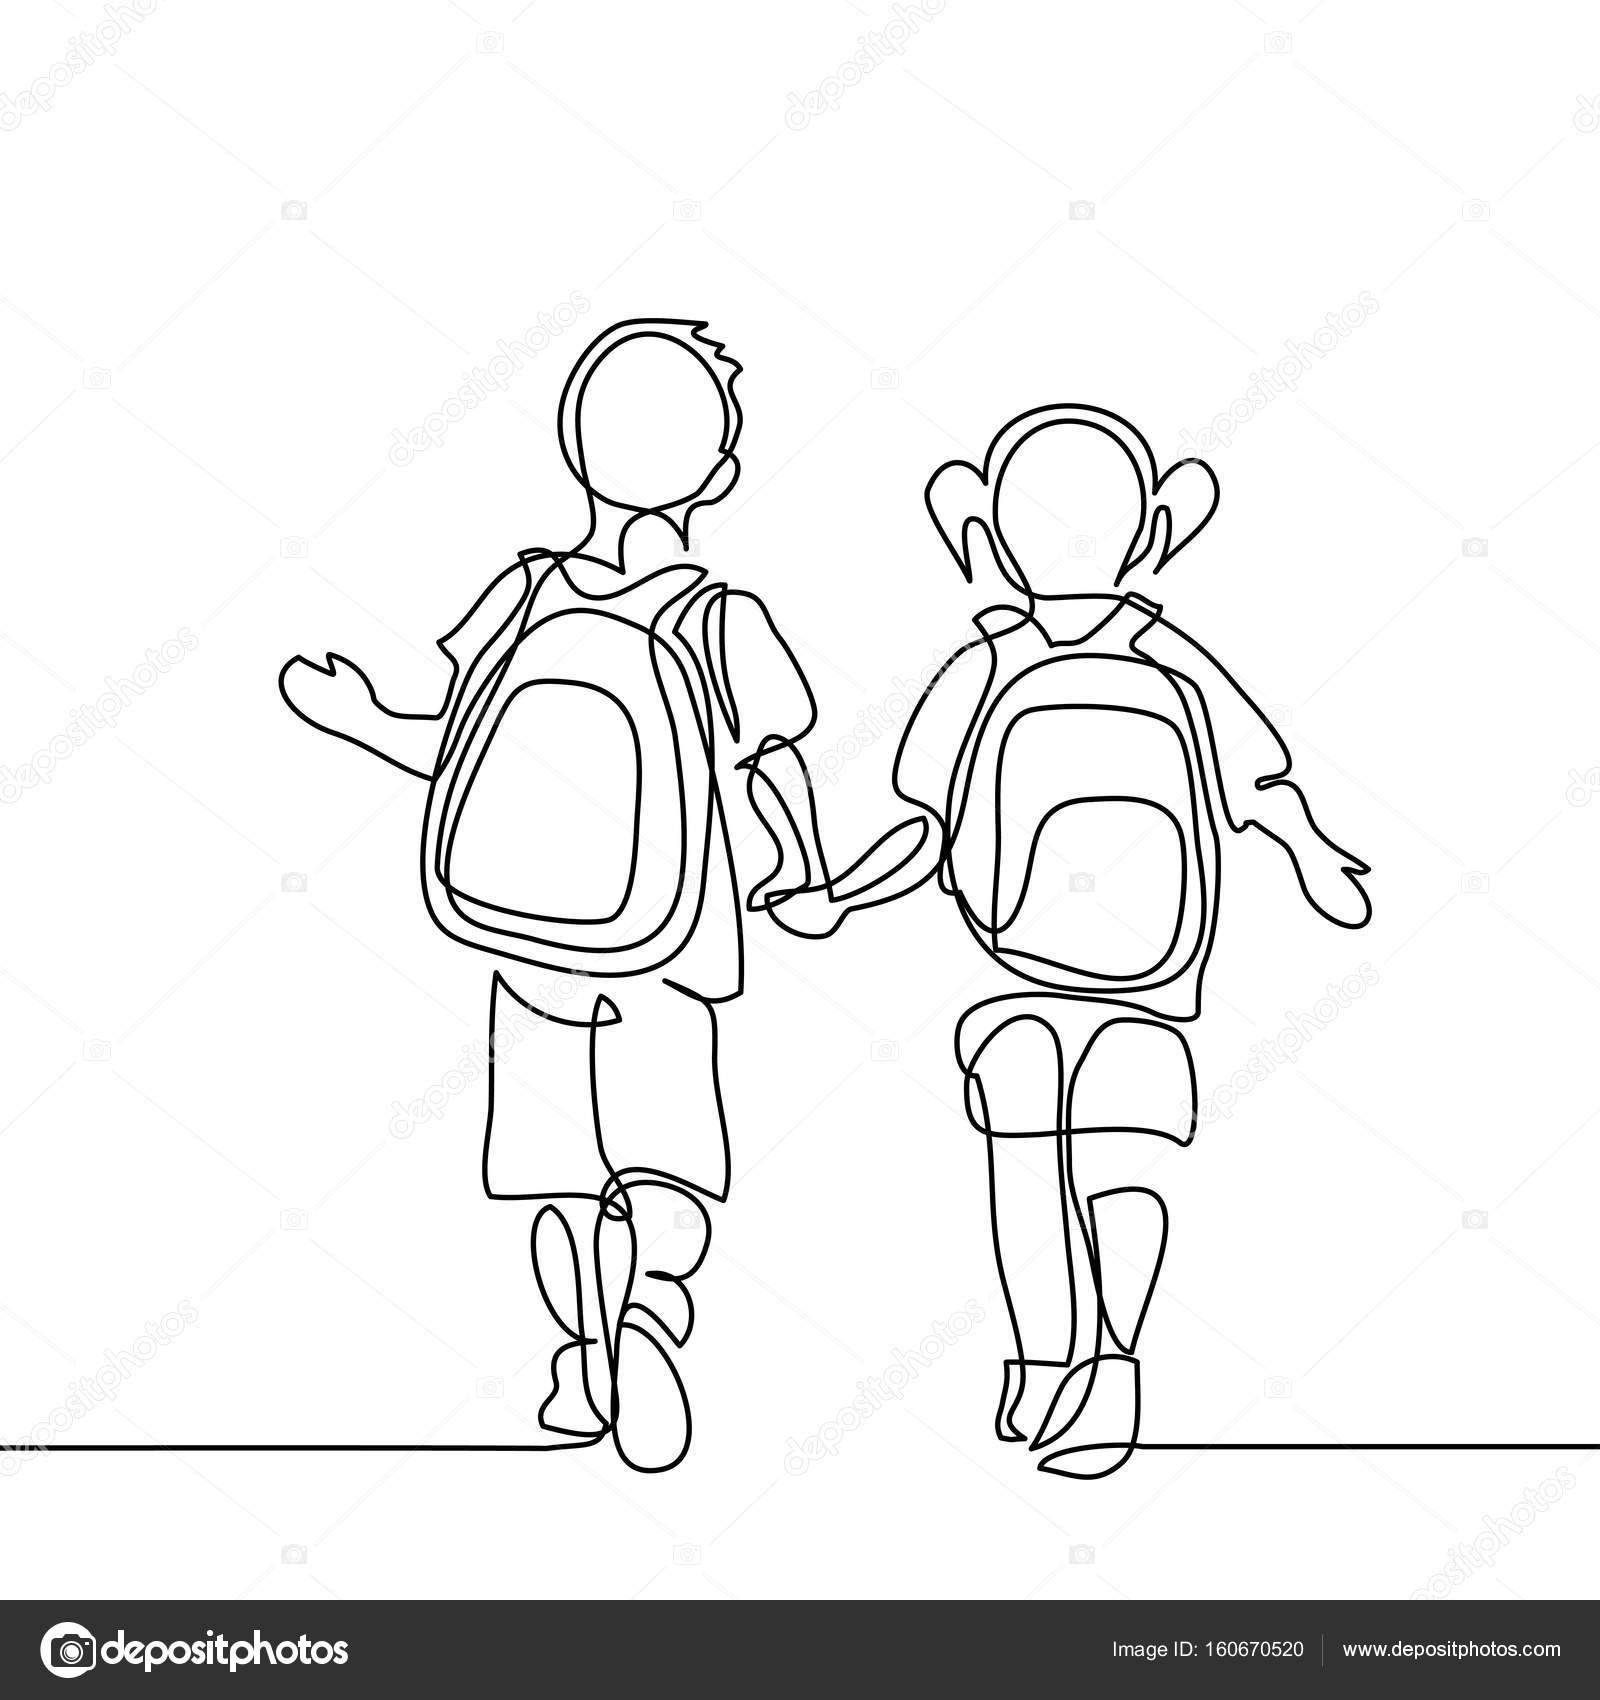 Line Drawing School : School line drawing at getdrawings free for personal